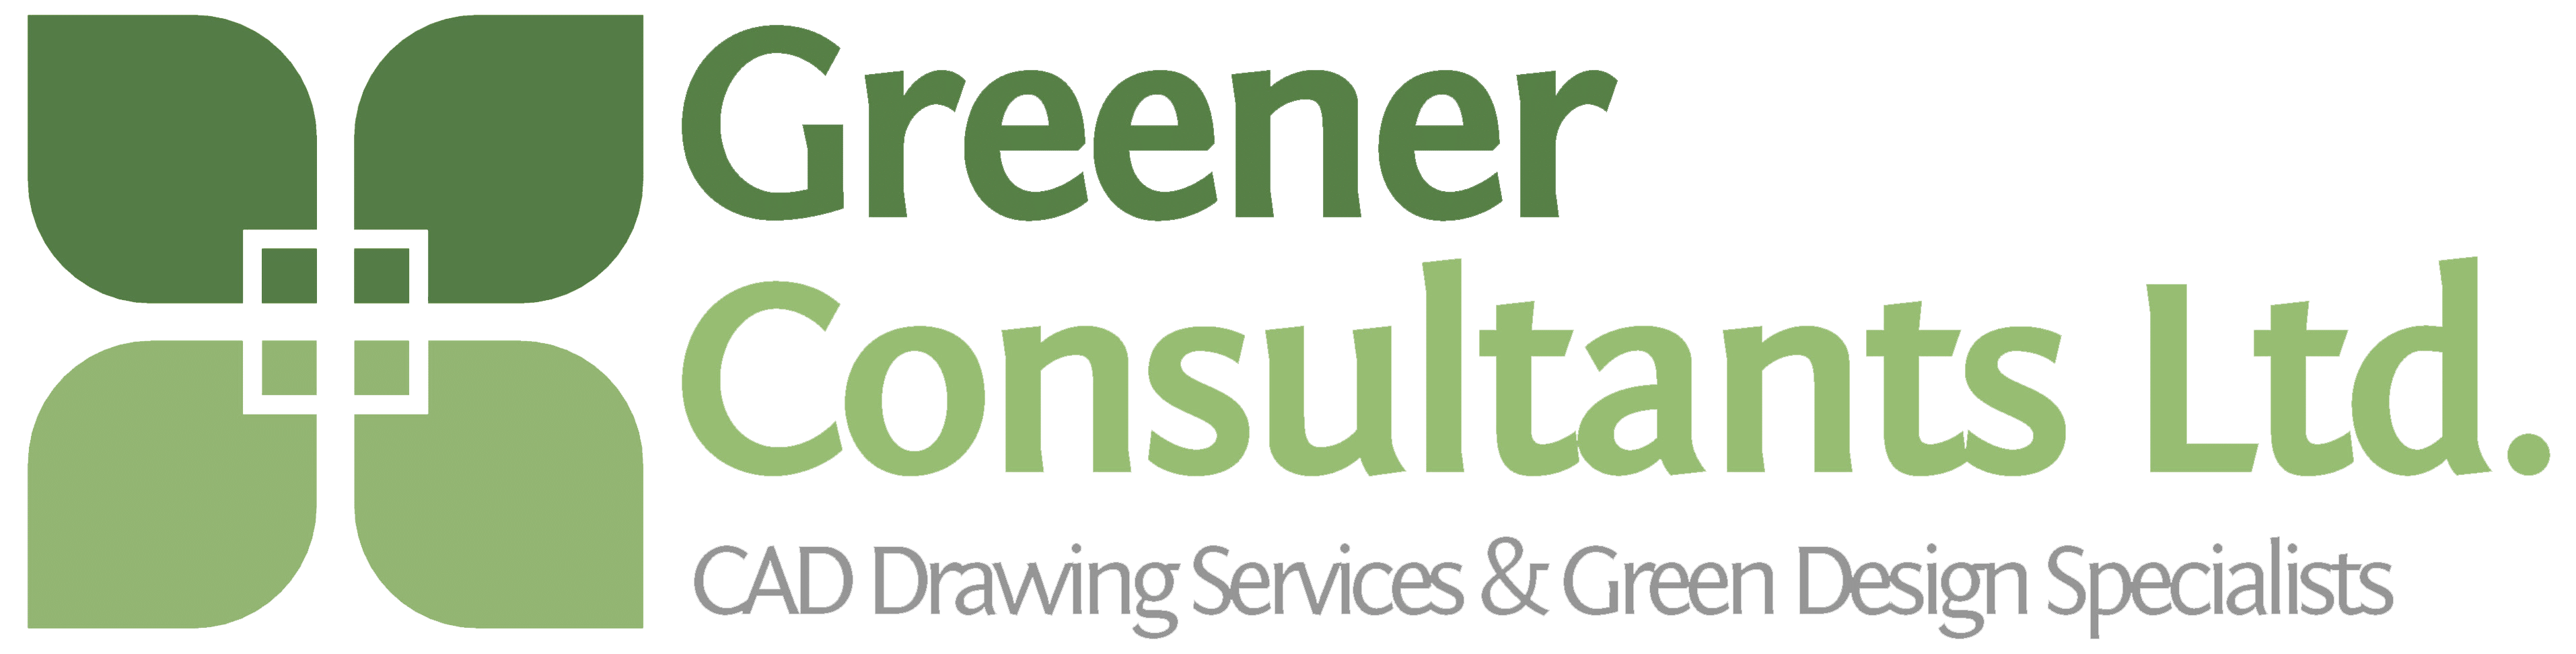 Greener Consultants